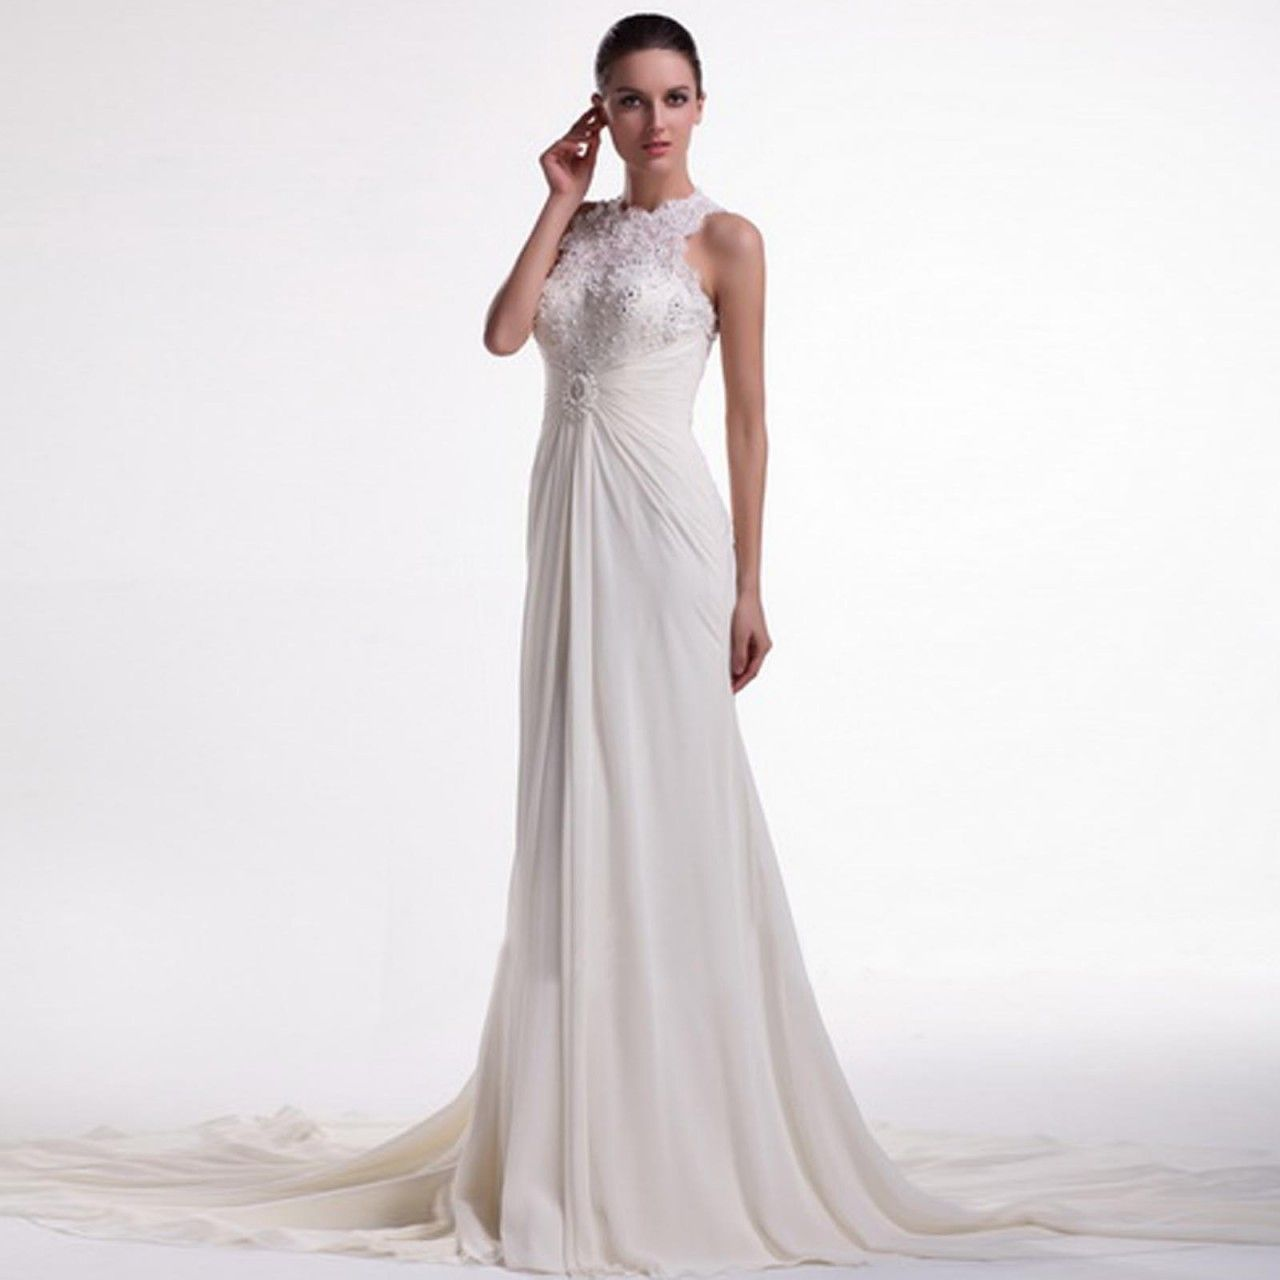 Fashionably yours zia lace halter neck wedding dresses by knightly